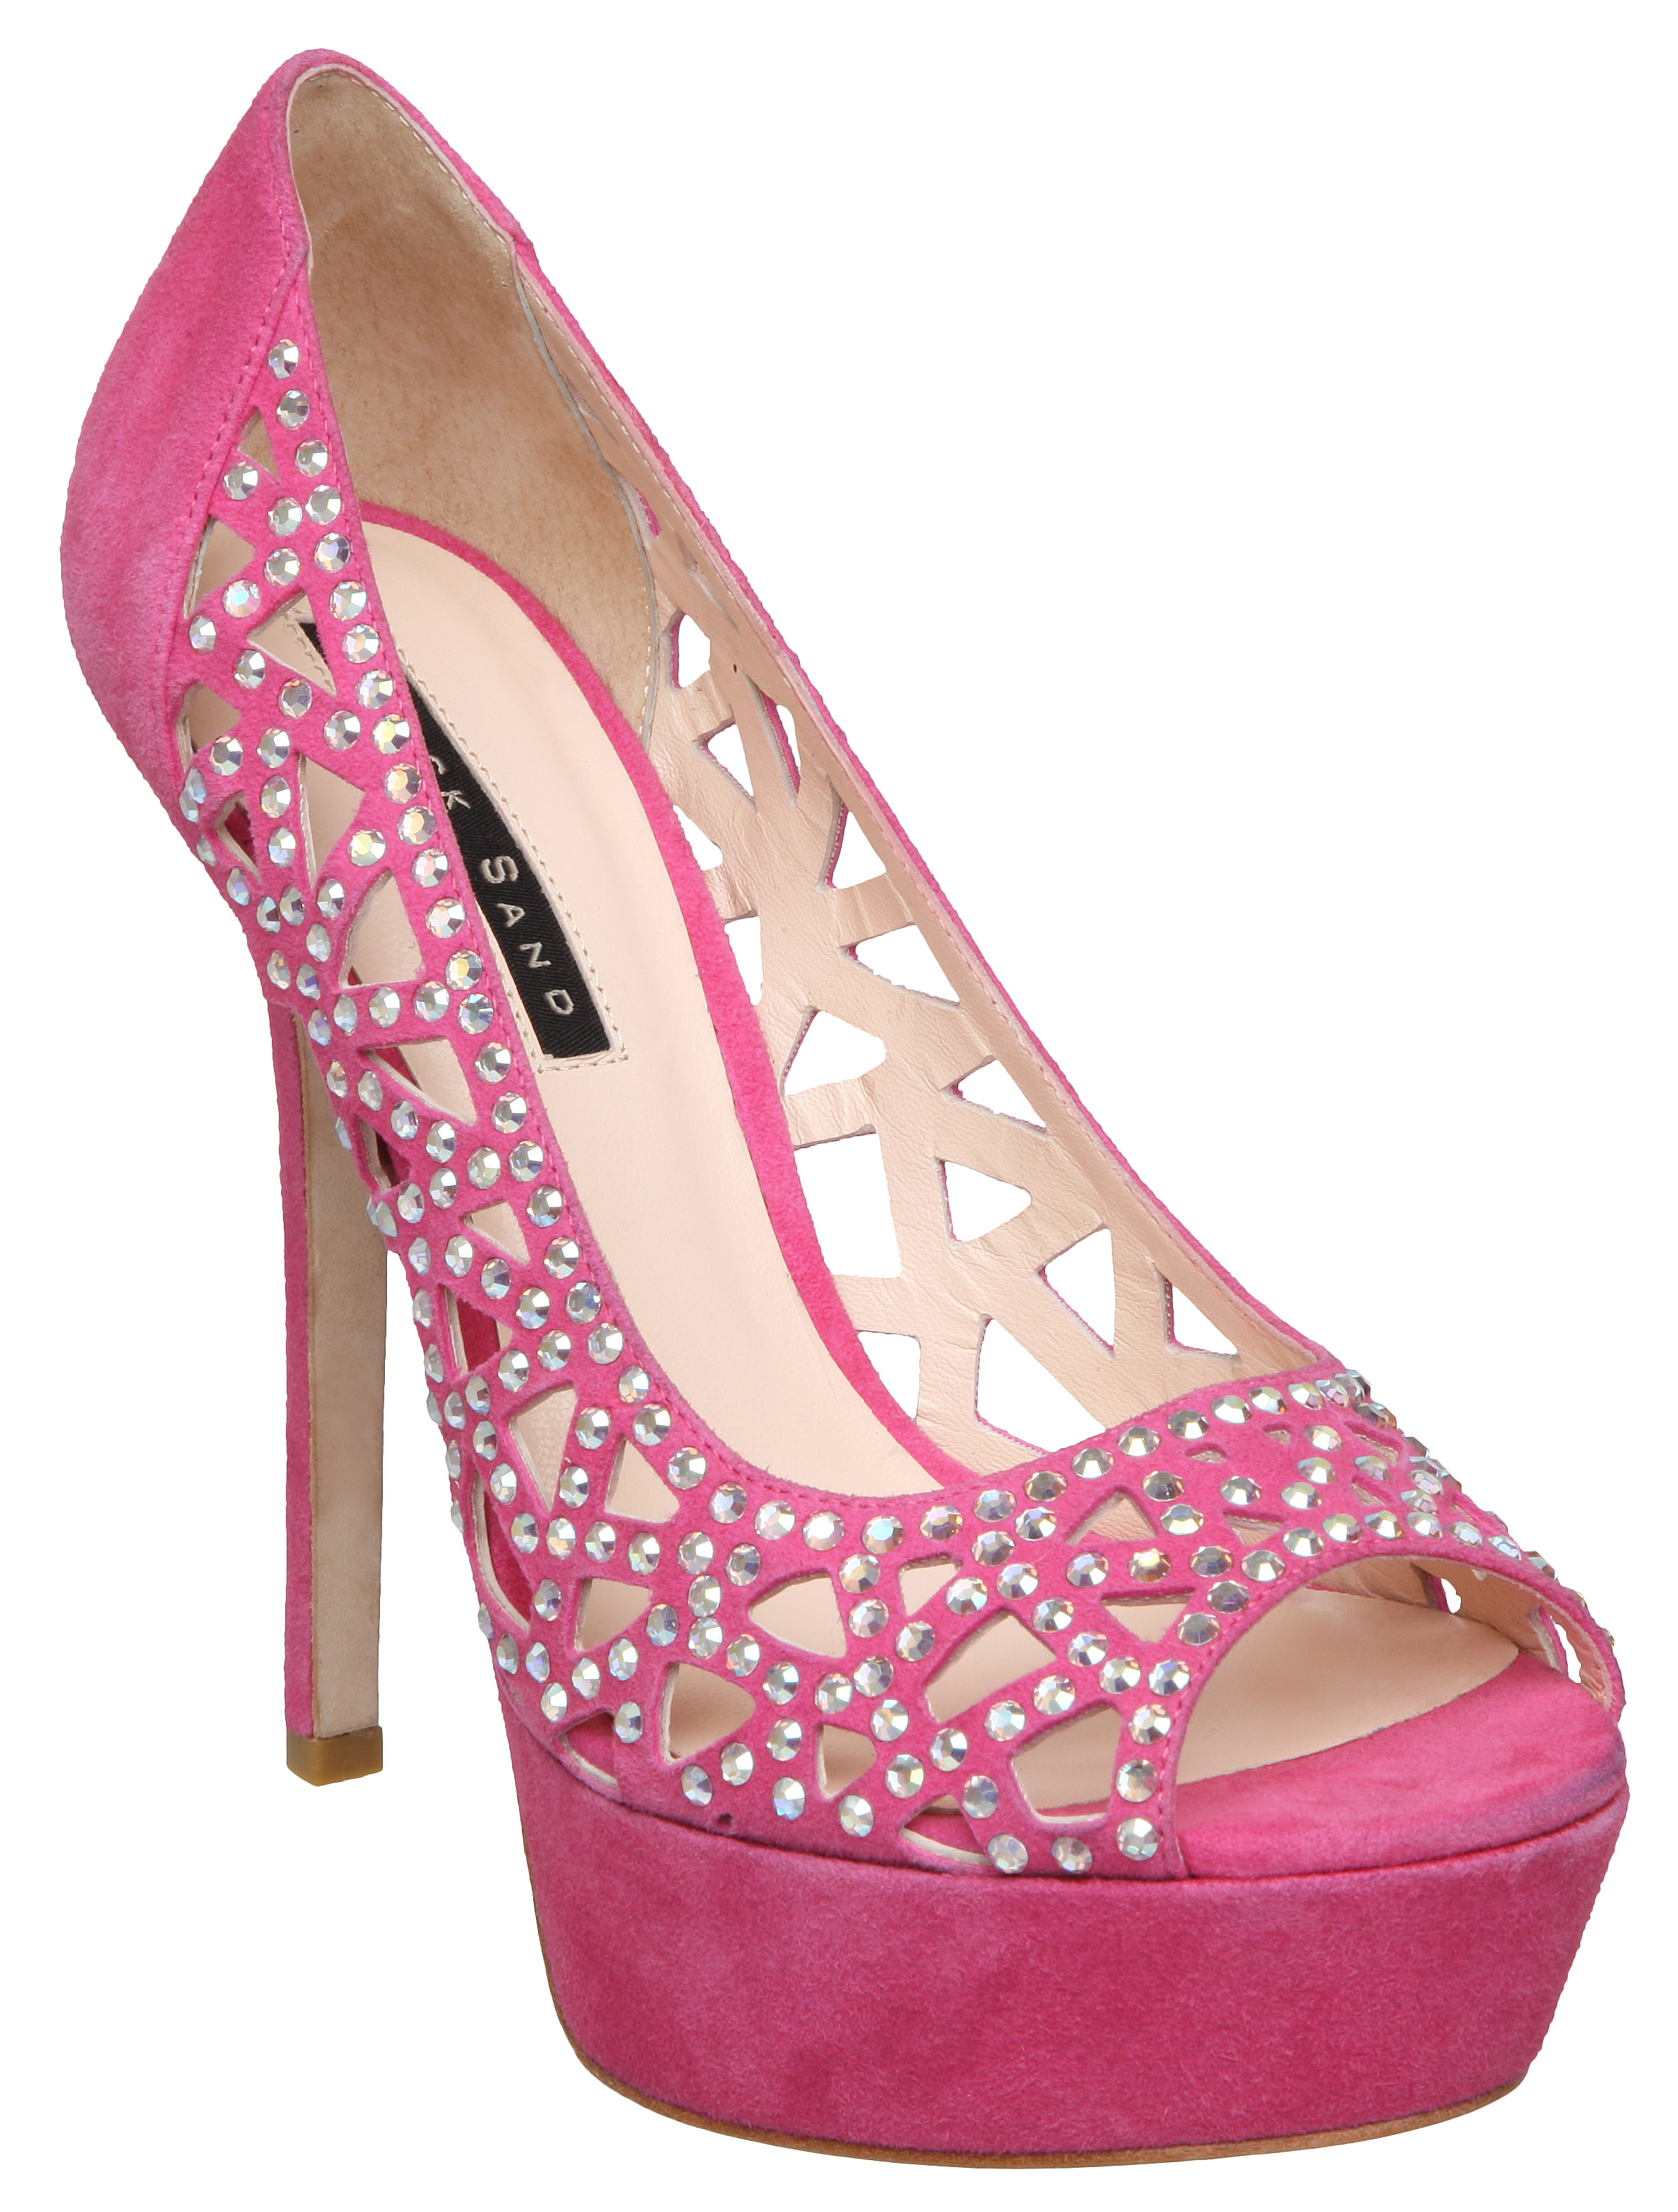 Fuschia Pink High Heel Shoes - Is Heel